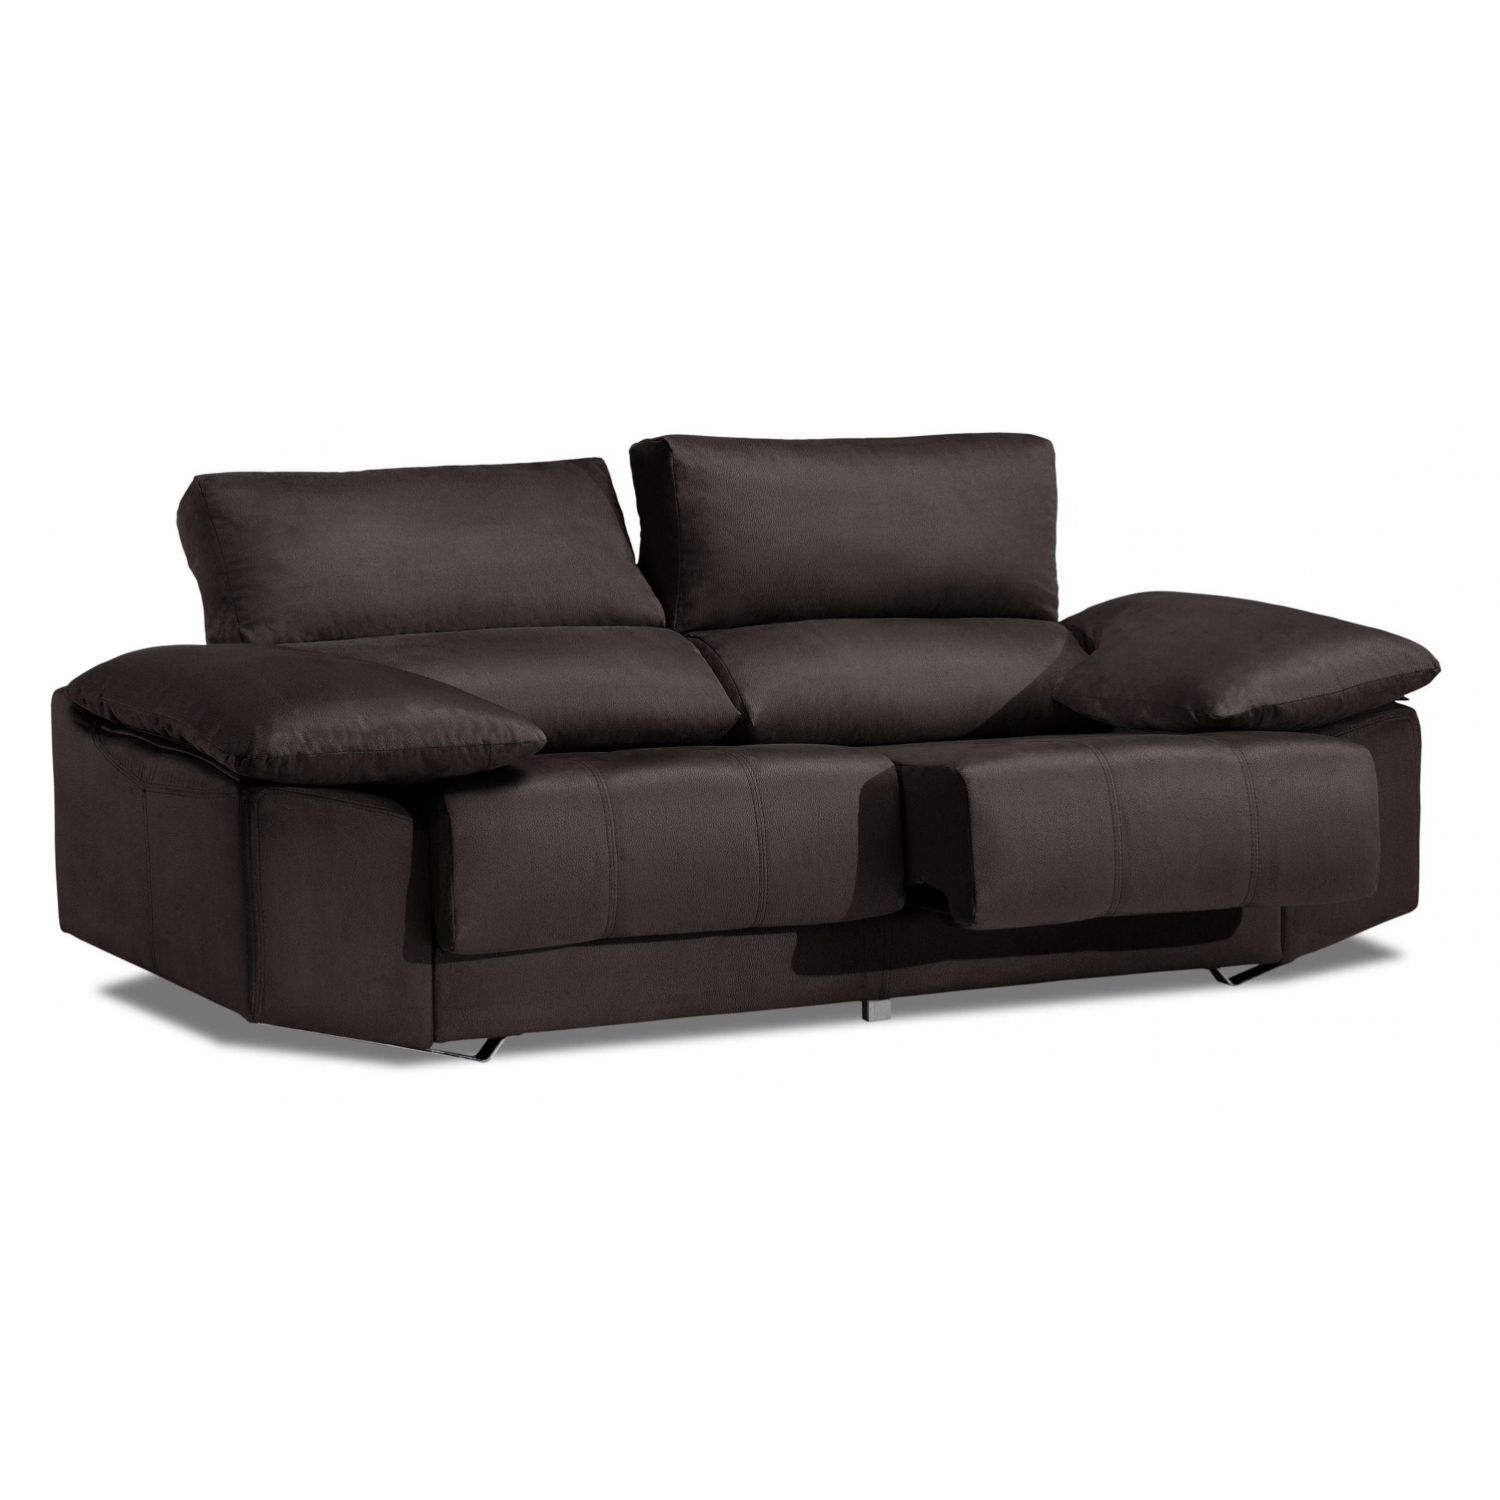 Sof alta gama trufa 3 plazas reclinable y extensible for Sofa 2 plazas extensible